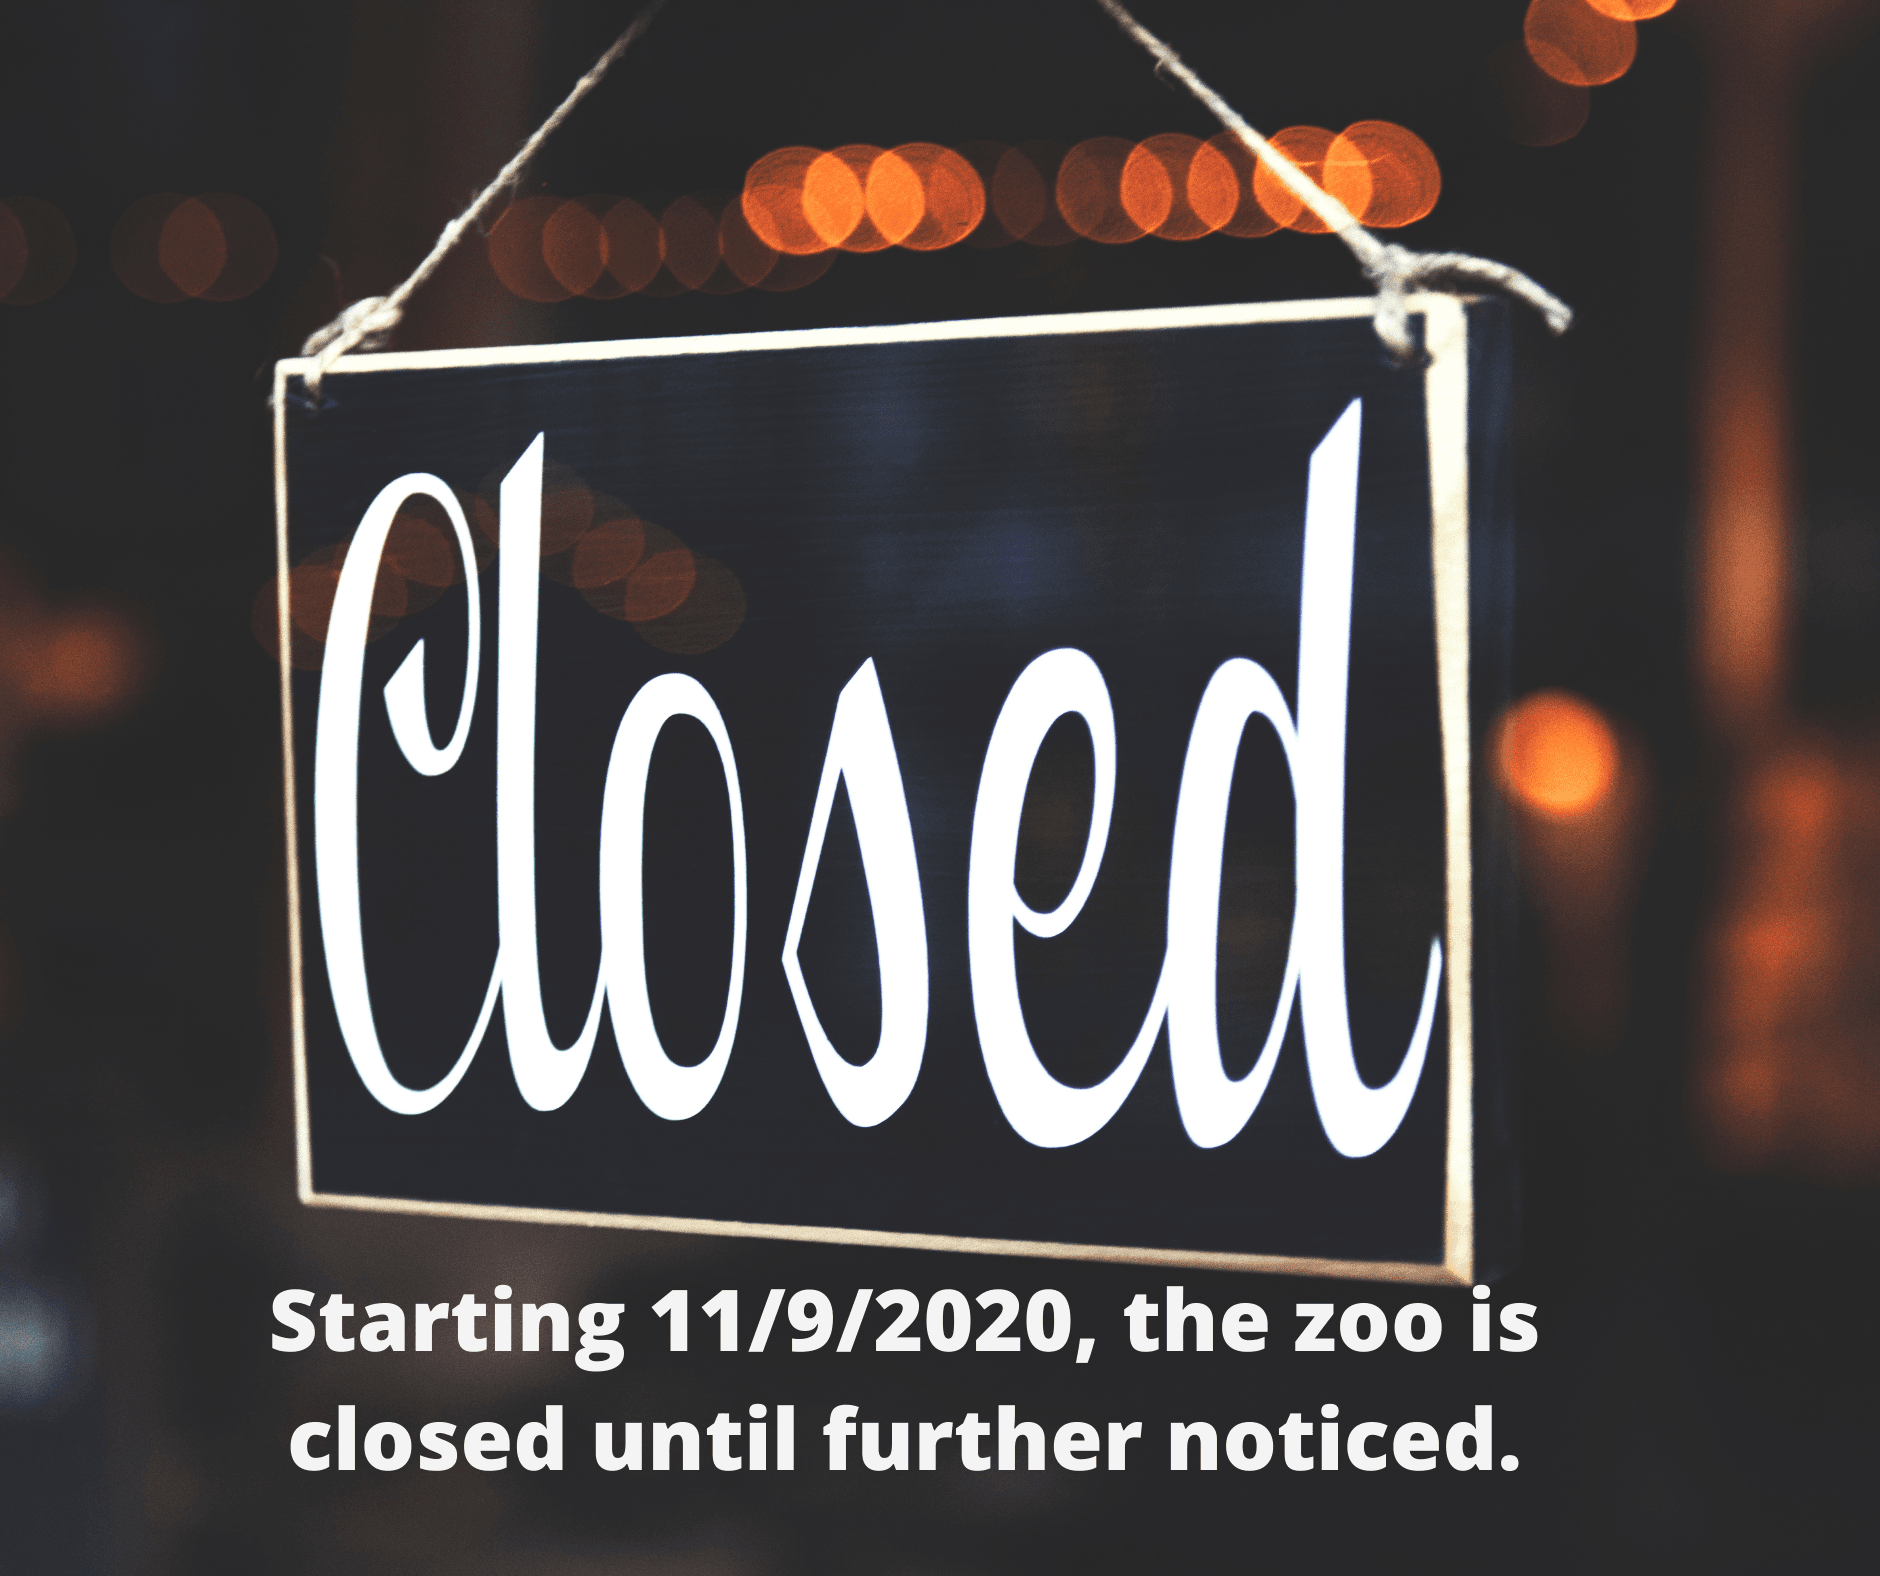 Zoo Closed sign